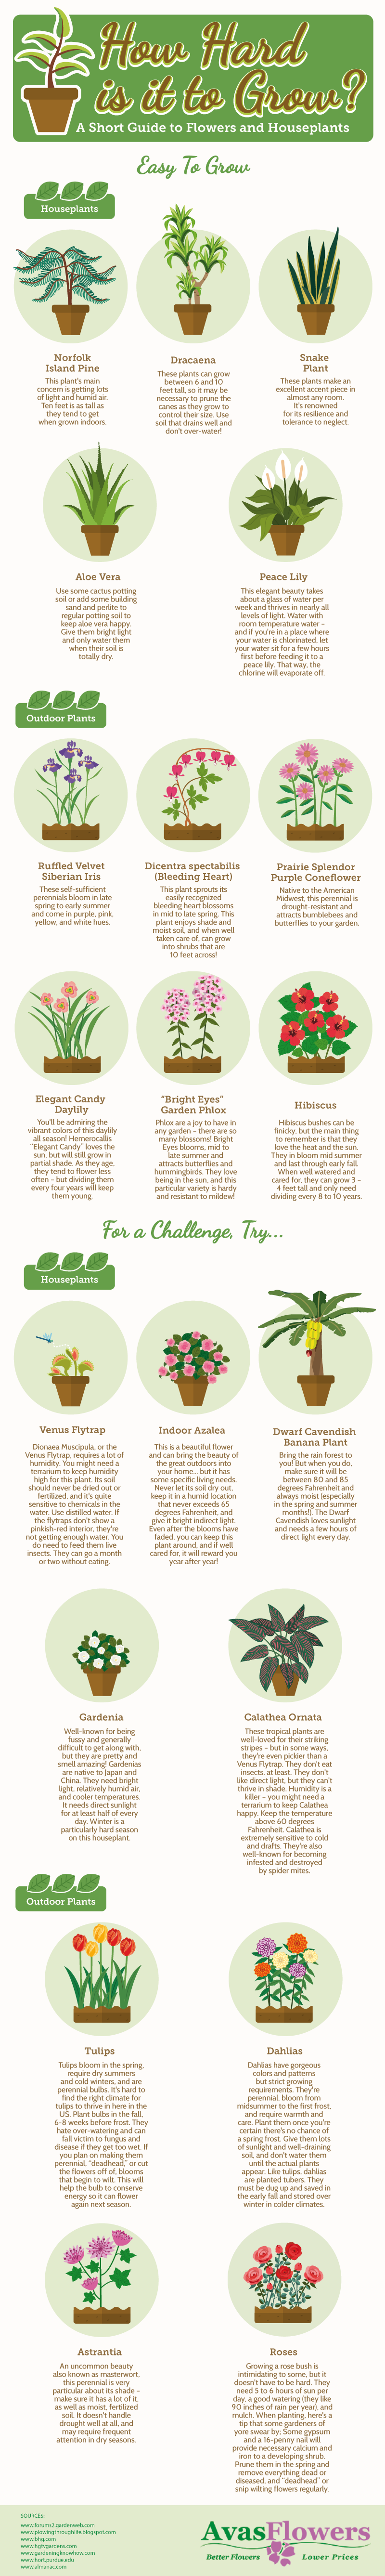 How Hard is it to Grow? - Avasflowers.net - Infographic